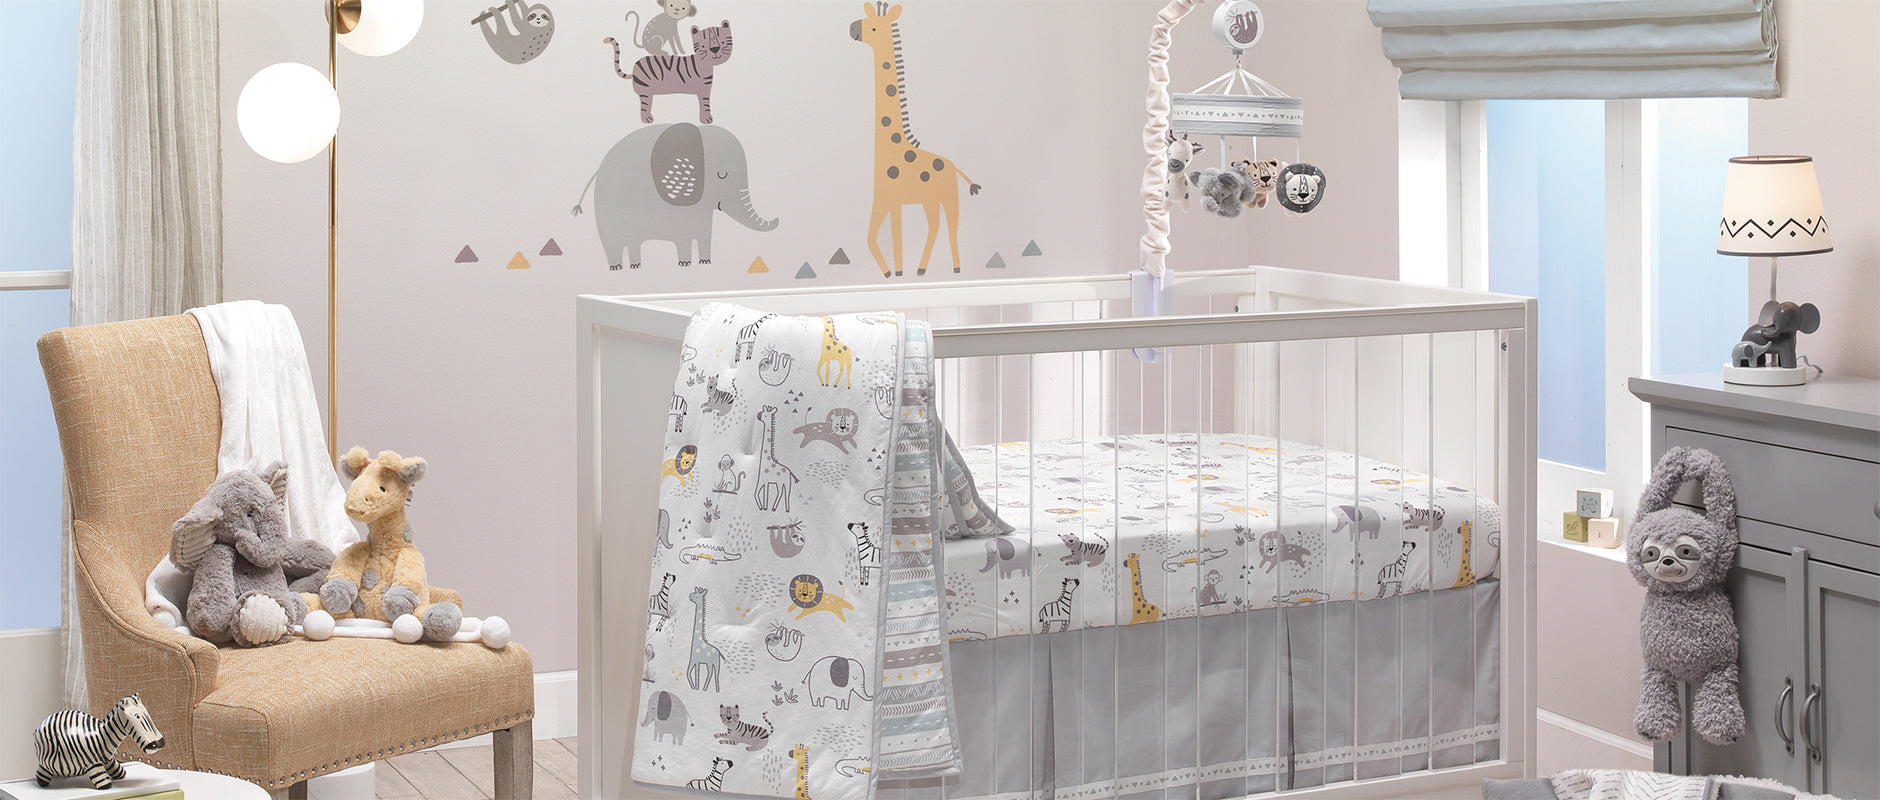 Lambs & Ivy - Baby Bedding | Crib Bedding | Nursery Decor & Baby Gifts